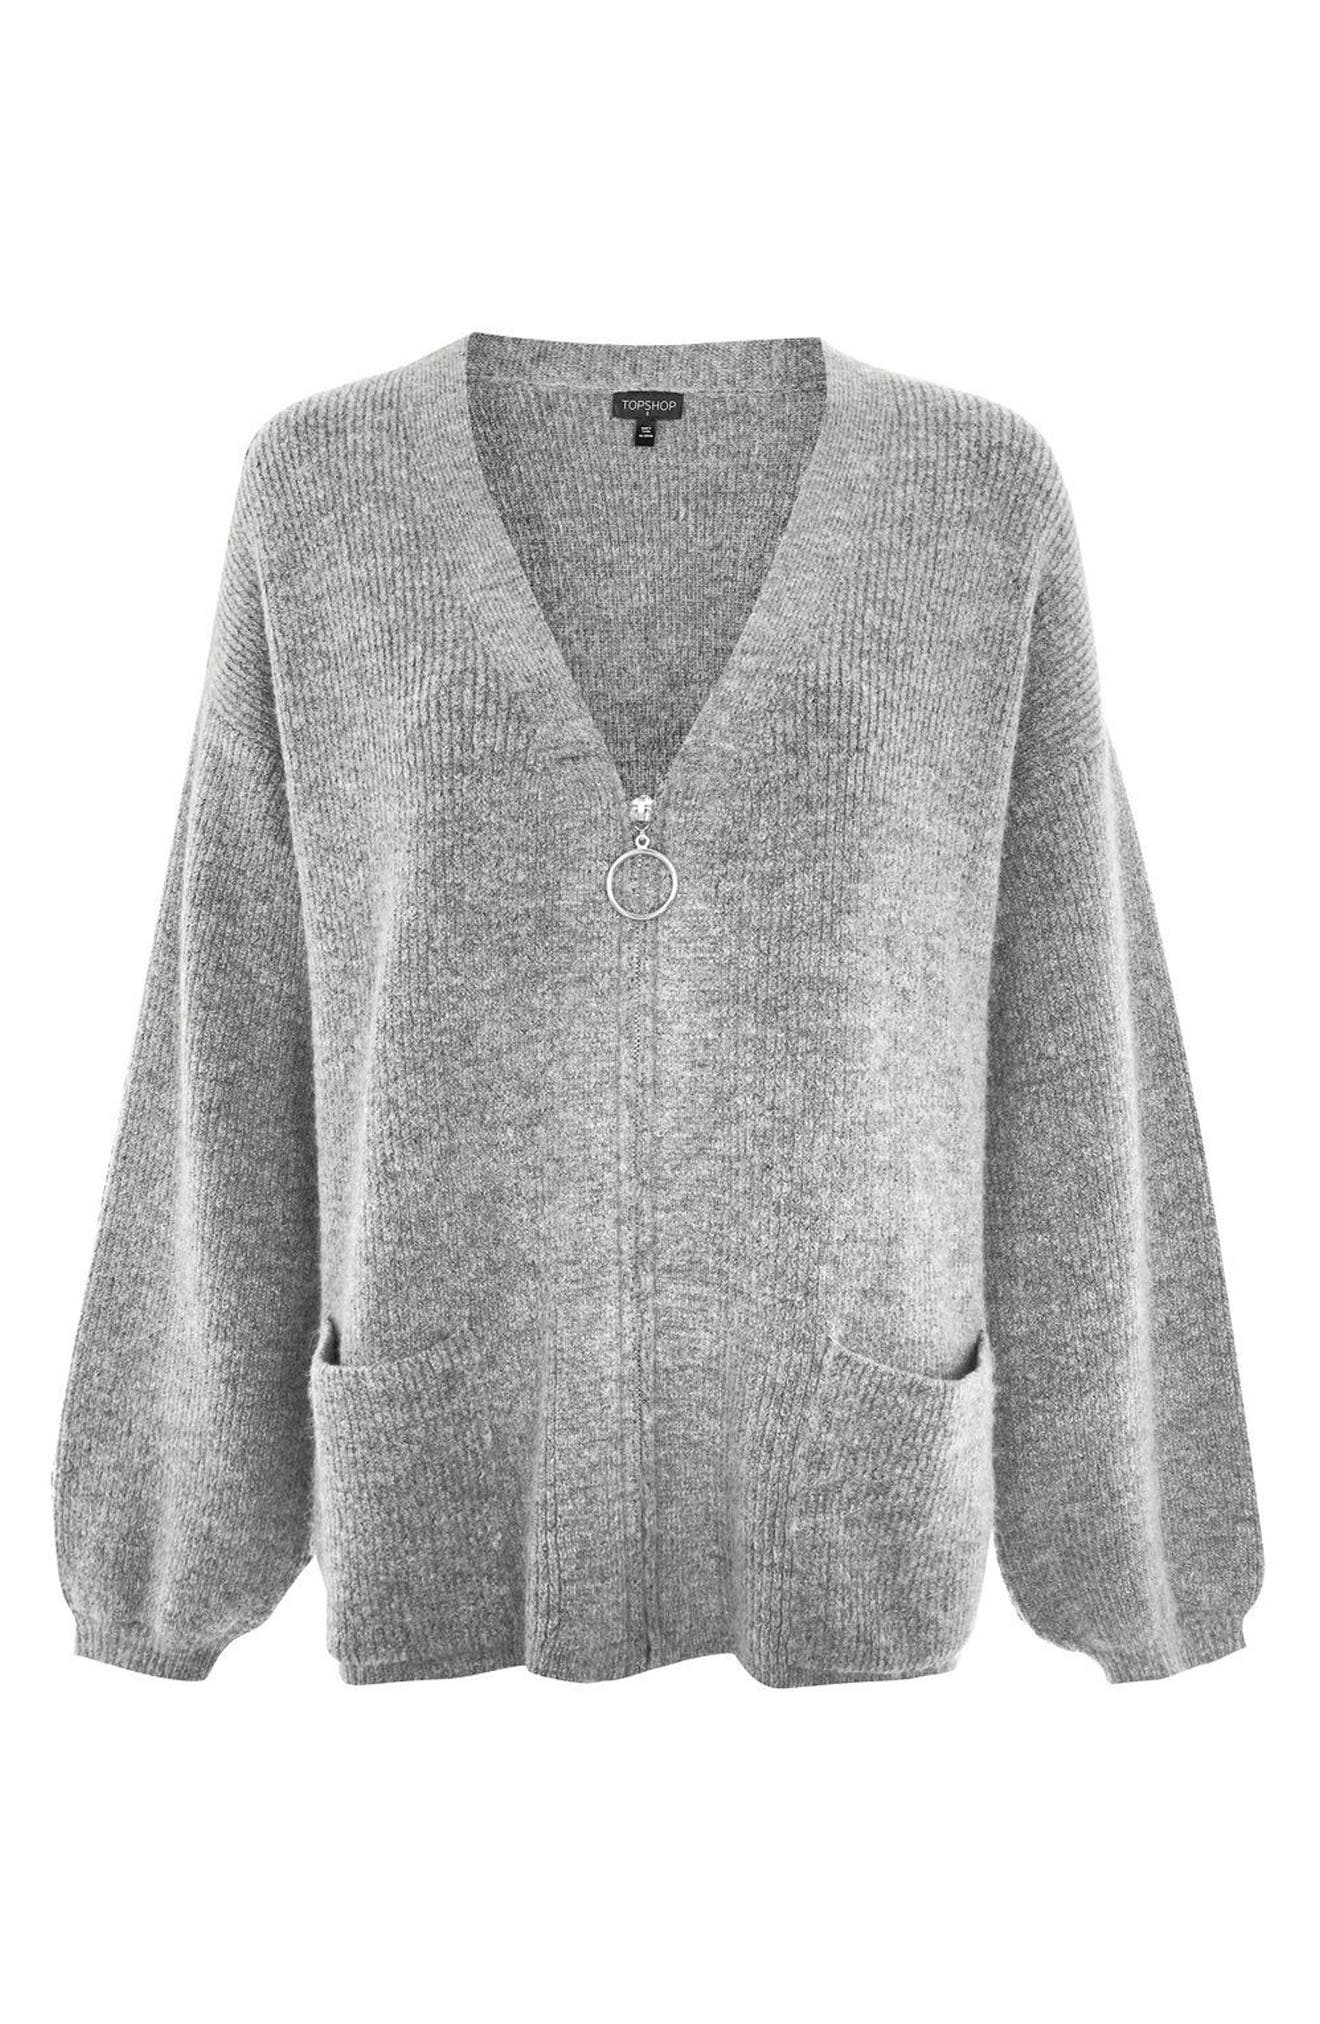 Ring Zip Cardigan,                             Alternate thumbnail 5, color,                             Grey